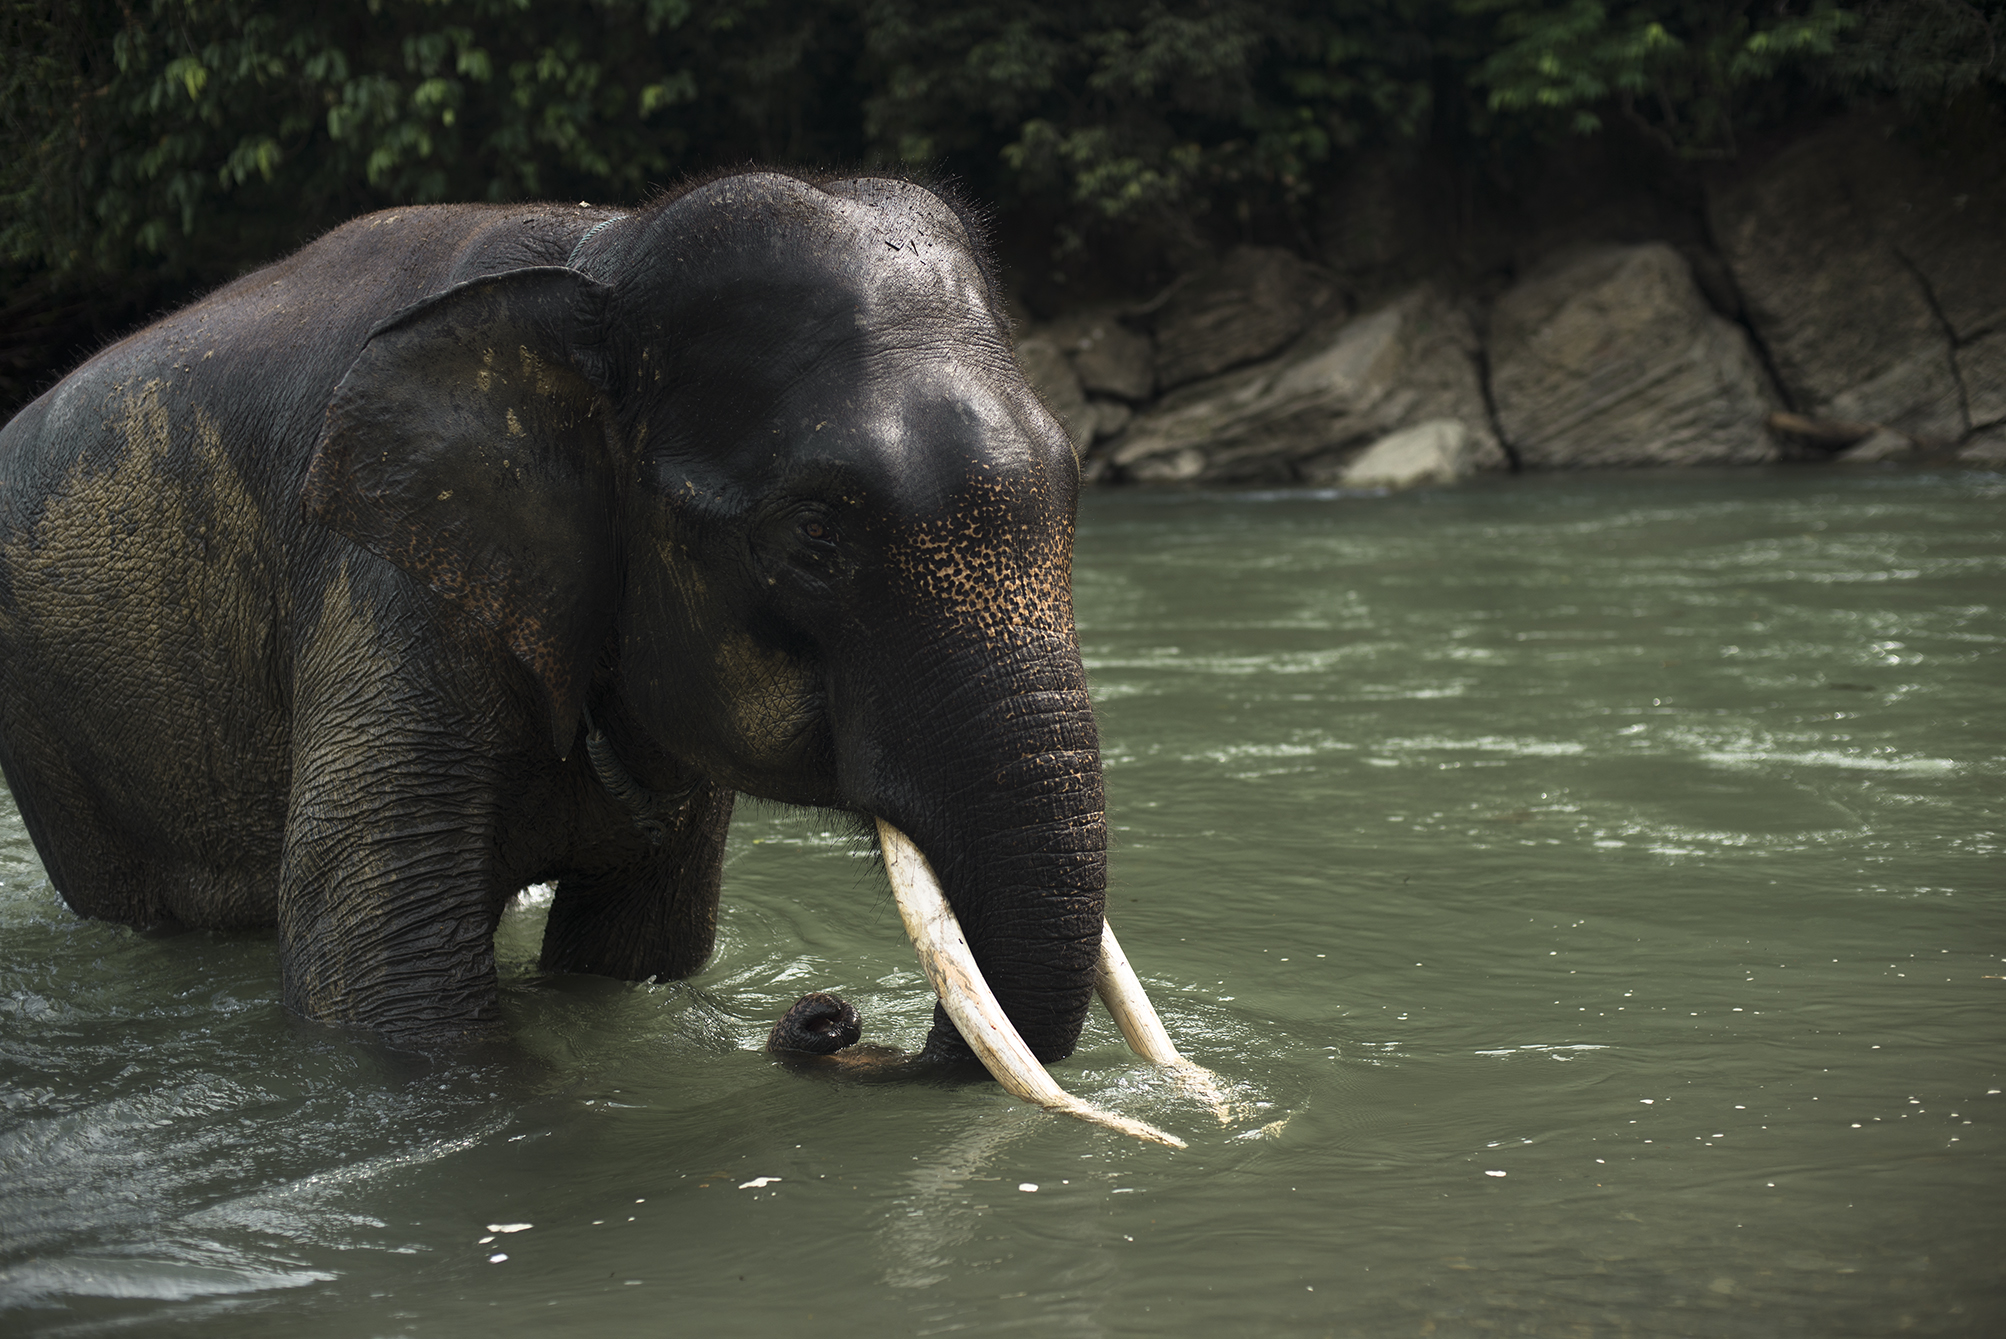 Critically endangered Sumatran elephant, the smallest elephant in the world.